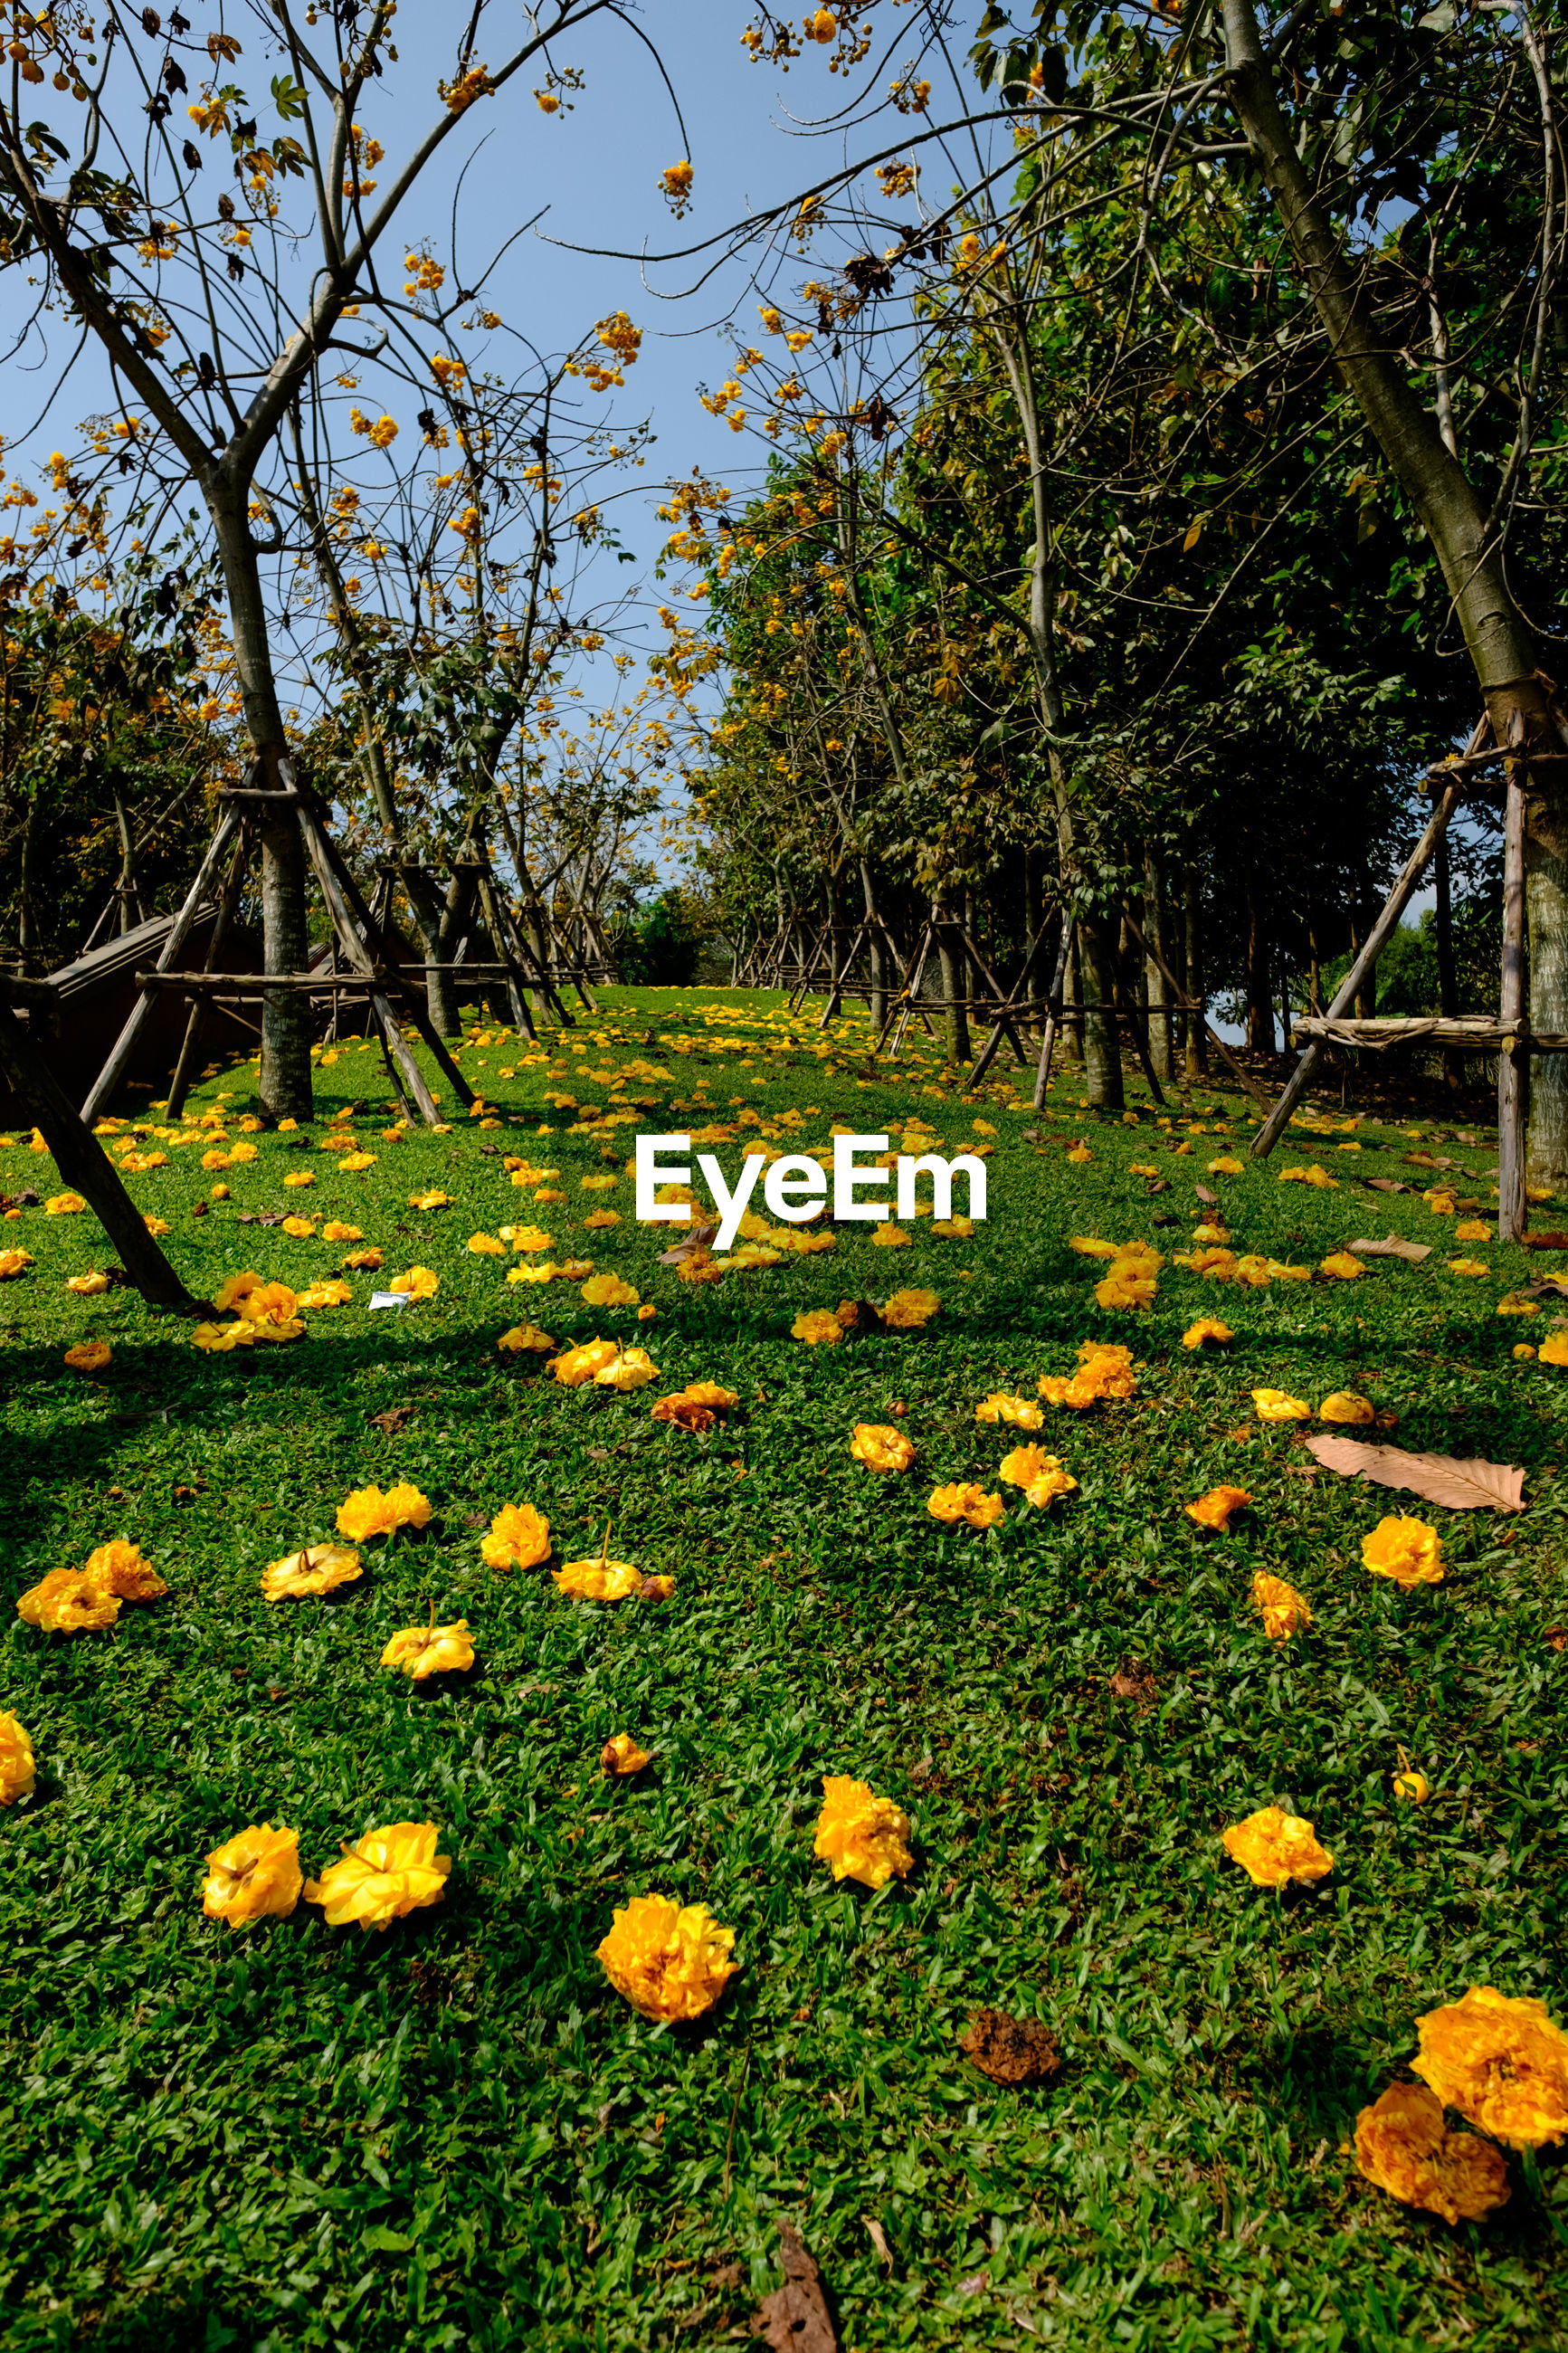 SCENIC VIEW OF FLOWERING PLANTS AND TREES IN FIELD